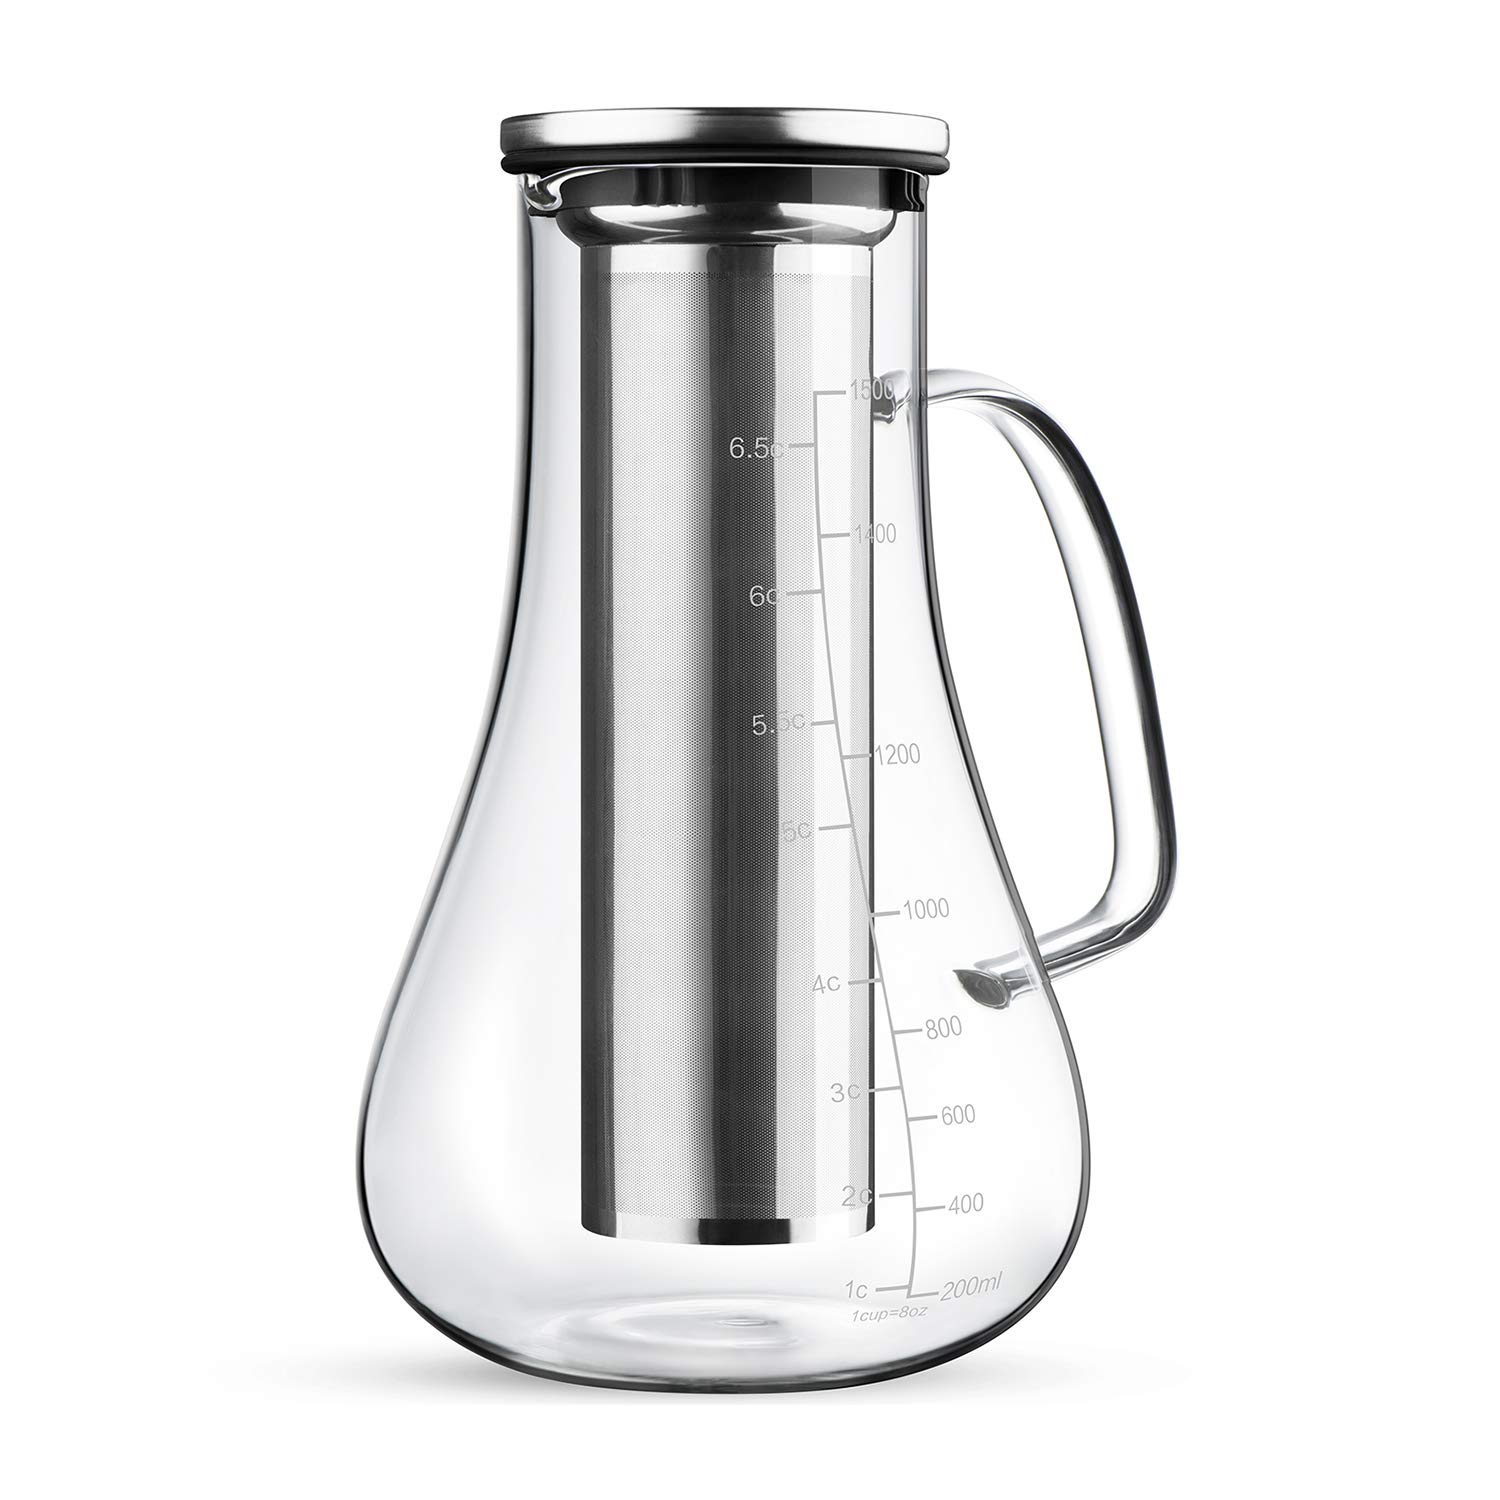 RooLee Cold Brew Coffee Maker Iced Tea Infuser 1.5L Airtight Glass Carafe Pitcher with Removable Stainless Steel Filter Large Capacity